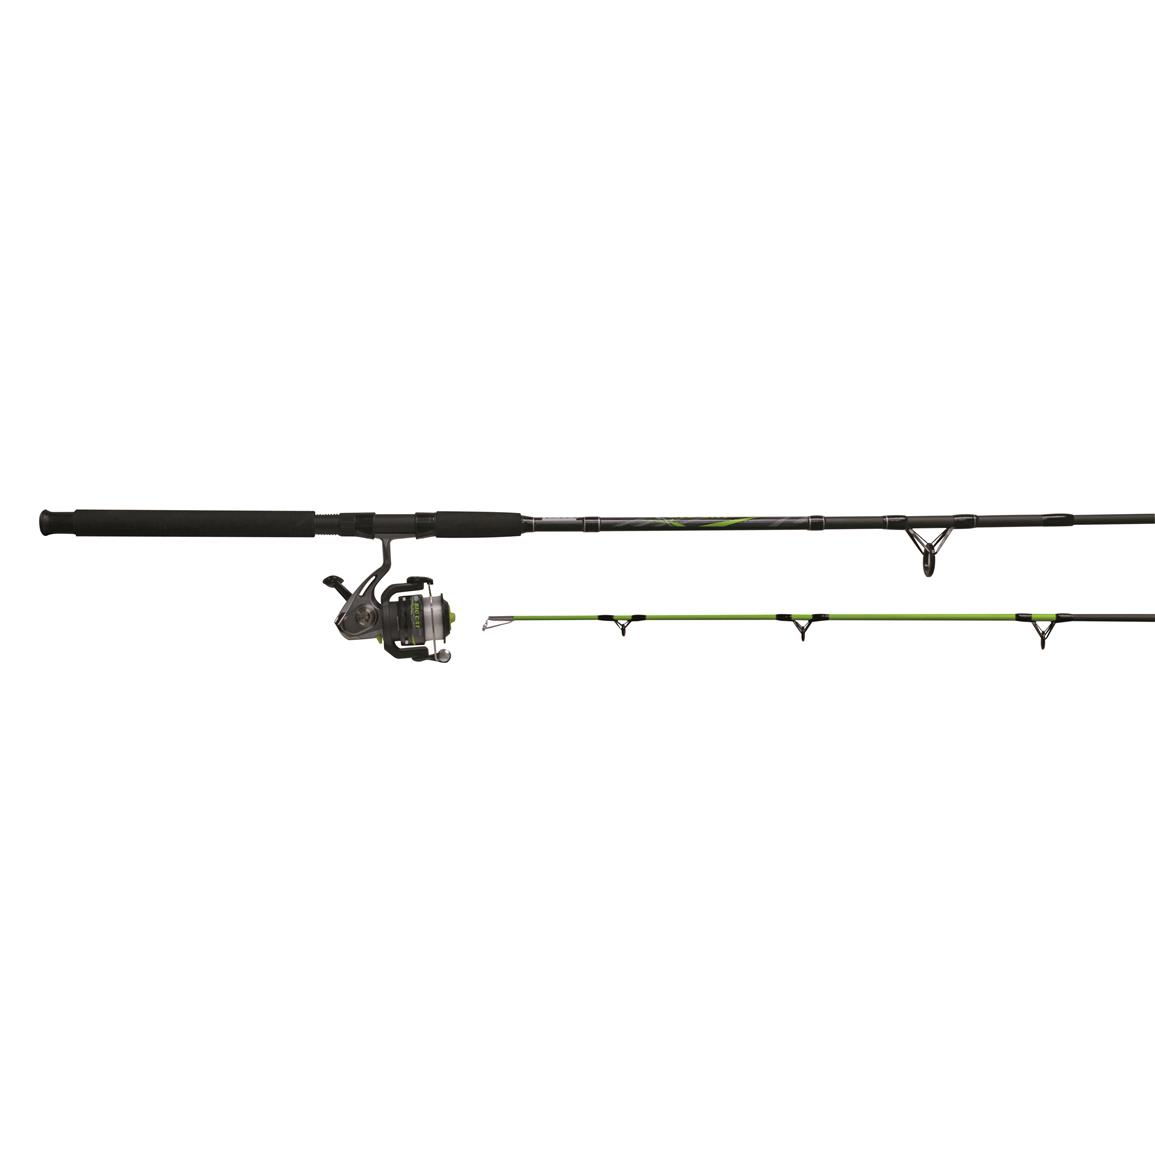 Zebco big cat spinning rod and reel combo 676320 for Cat fishing pole